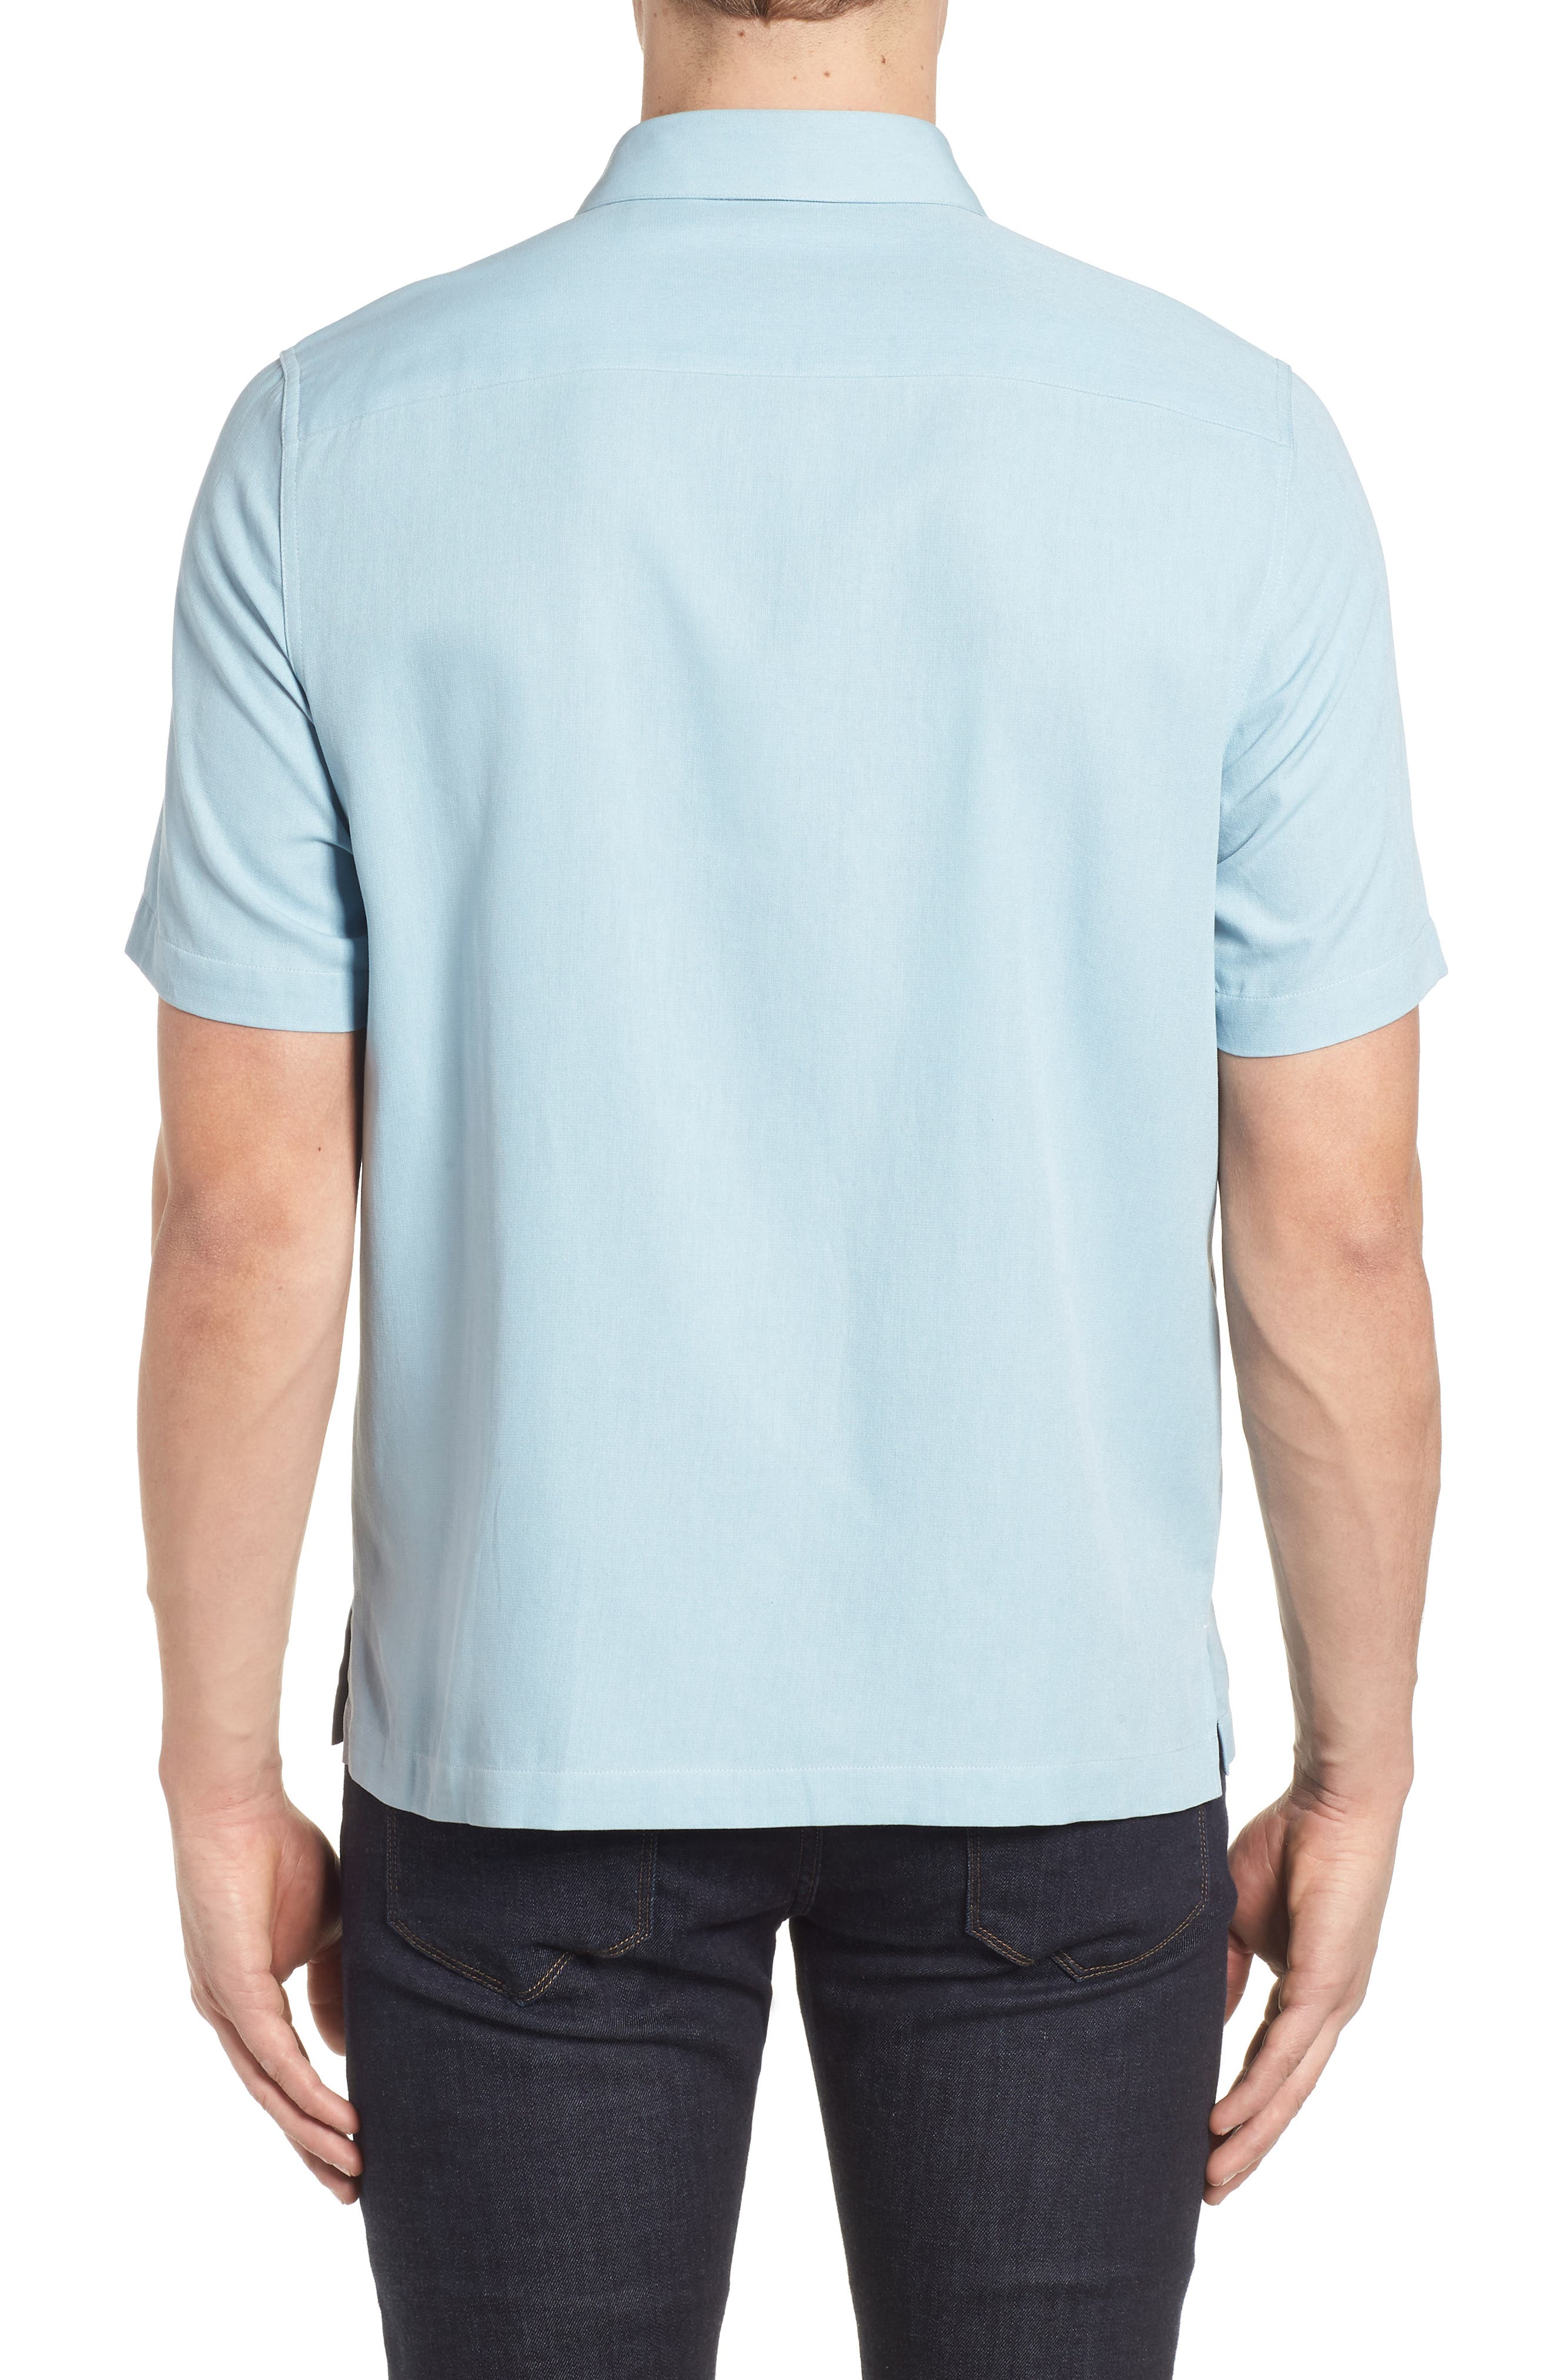 Retromod Camp Shirt,                             Alternate thumbnail 2, color,                             Niagra Blue